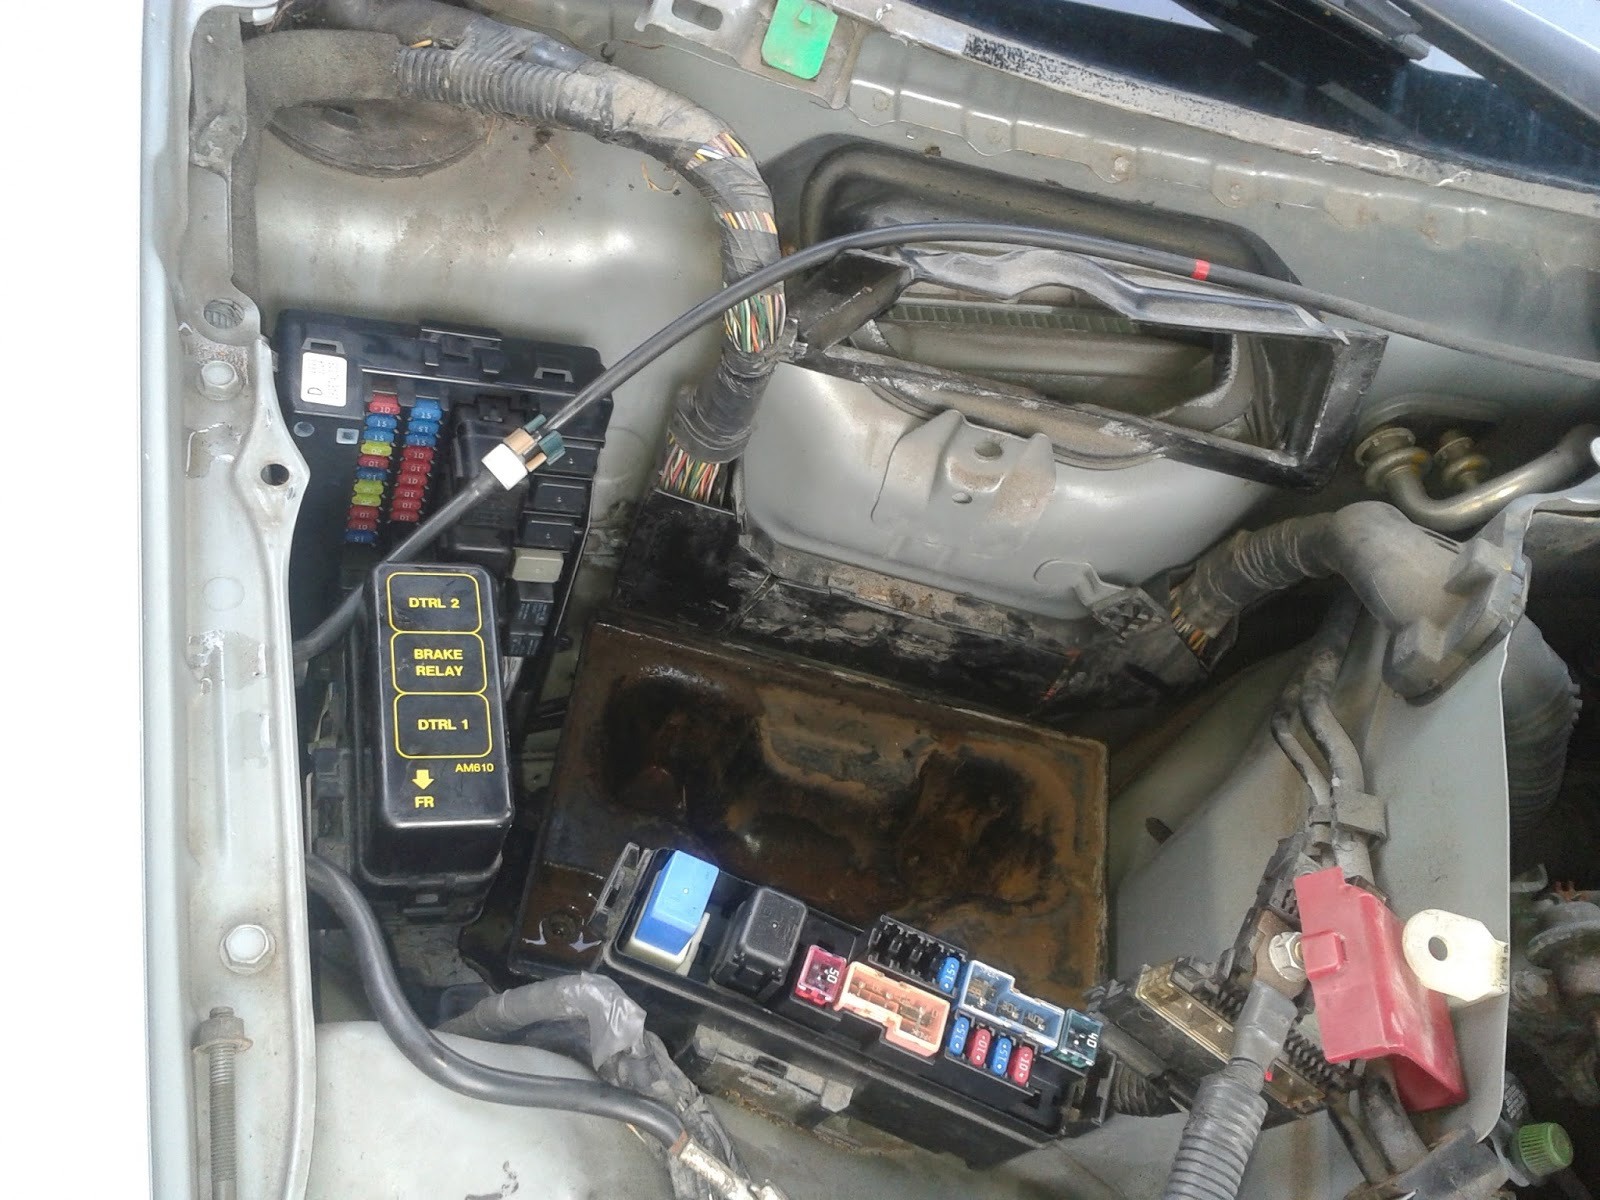 2015 05 27%2B18.55.50 zf inifiniti g35 2003 wet ipdm issue, how to fix it 2005 infiniti g35 fuse box location at edmiracle.co